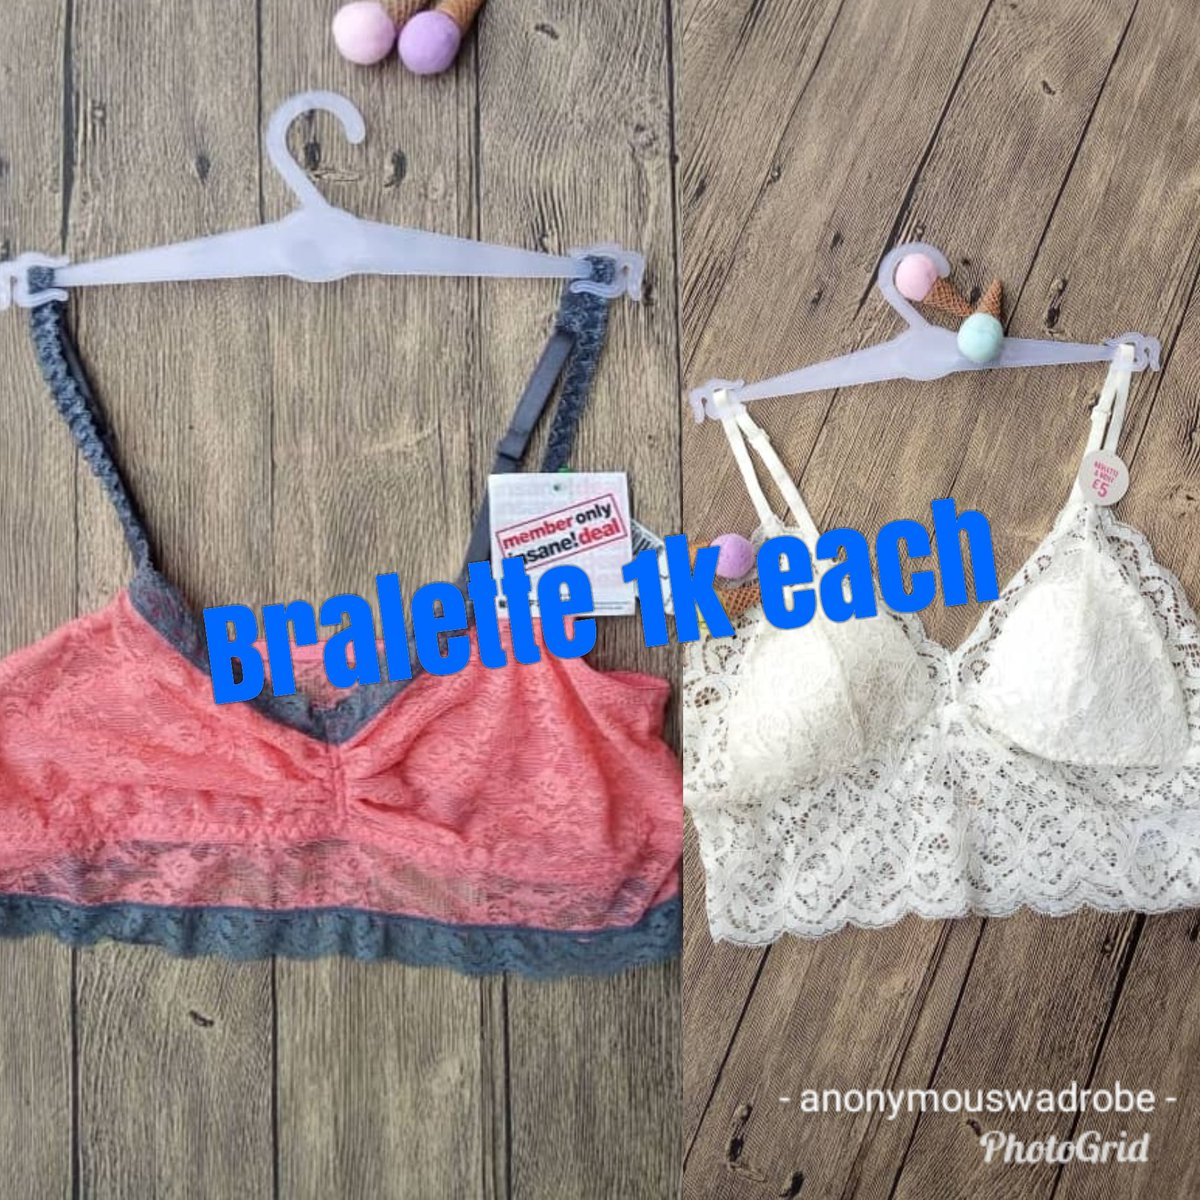 I sell quality lingeries, pants, bra, nightwears, gymwears, bodysuits, swimsuit all at affordable prices. pic.twitter.com/qlwaFLE1BW